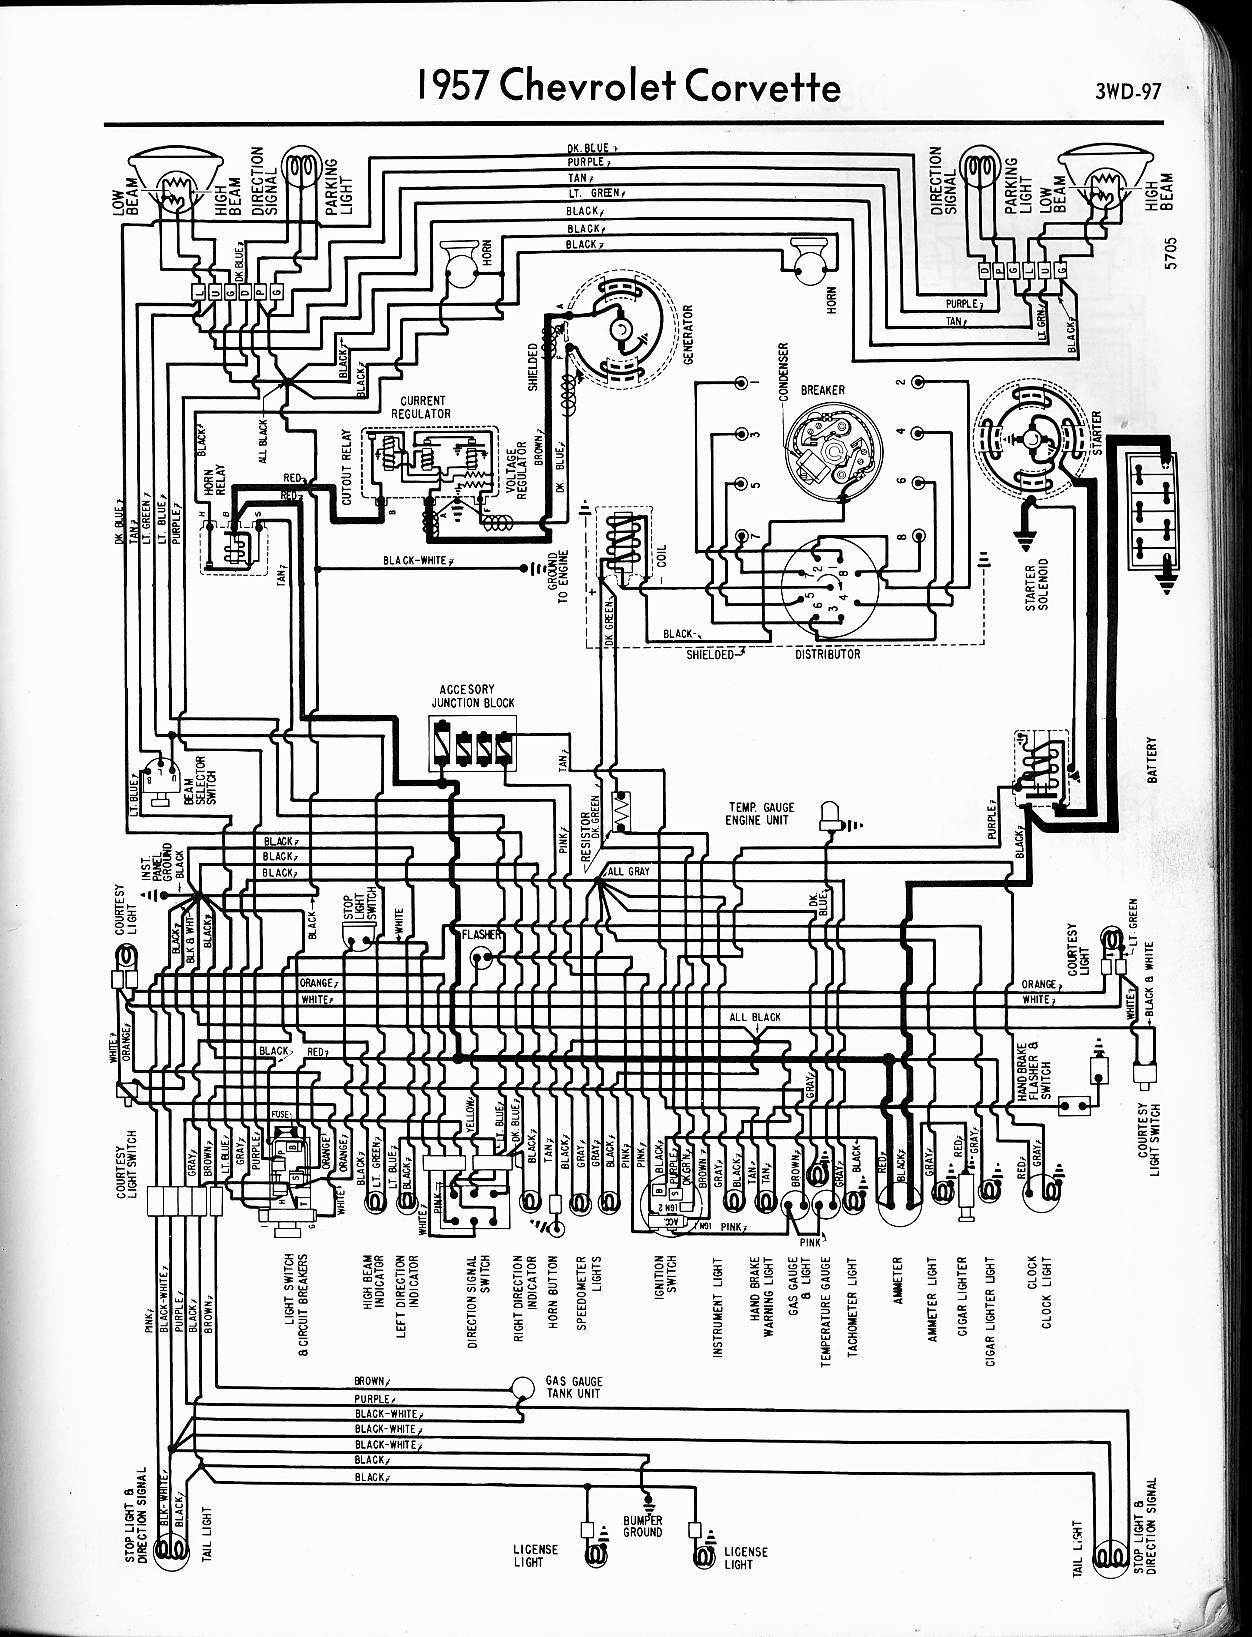 57 65 chevy wiring diagrams rh oldcarmanualproject com 1957 Chevy Original Engine 1957 Chevy Fuse Block Diagram